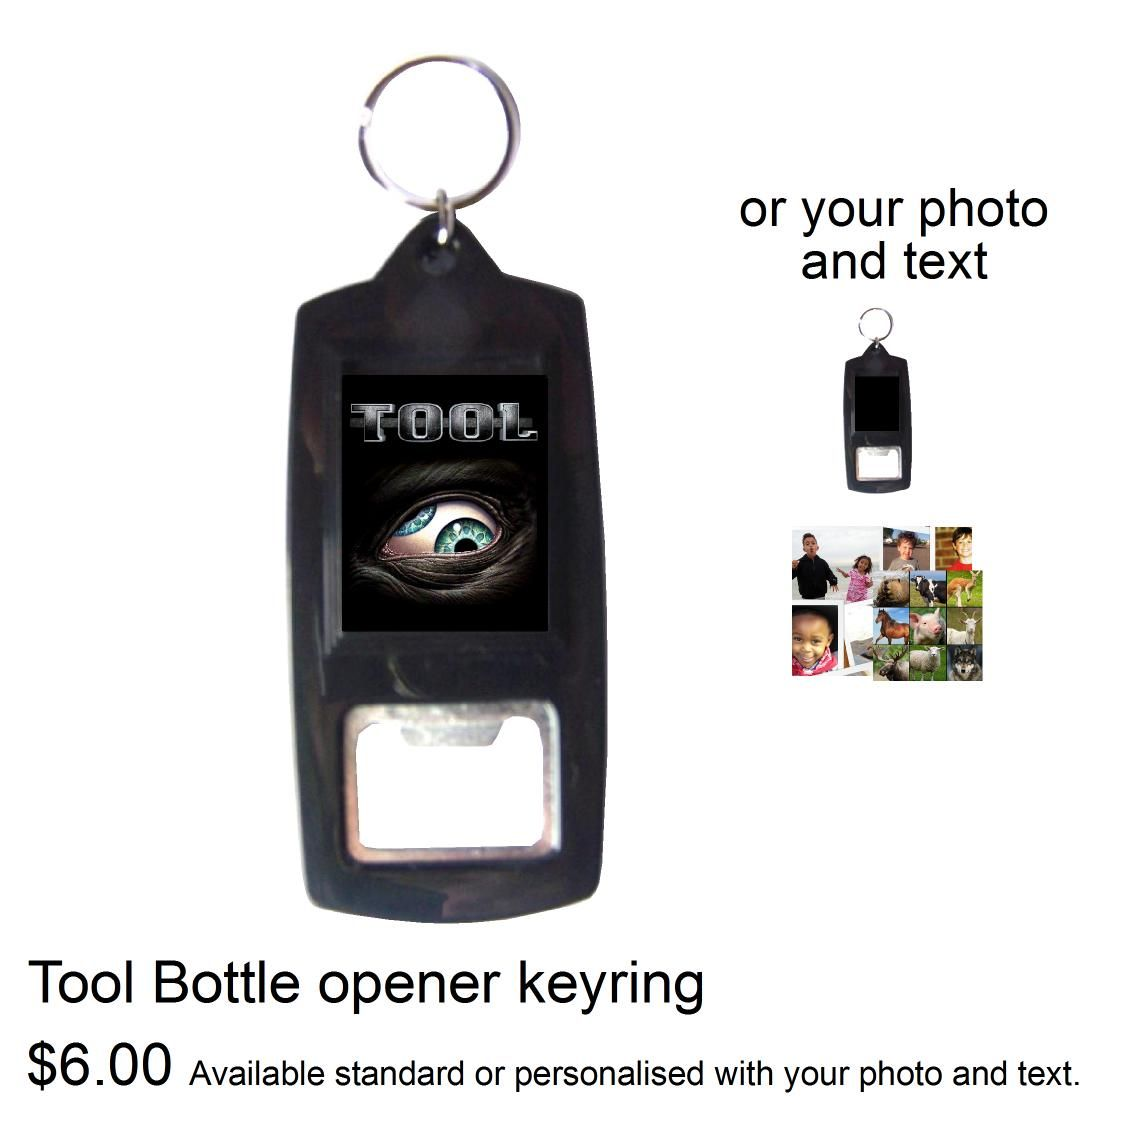 I have a range of different Tool Bottle Openers, magnets, signs and other items available in my Etsy Store. I post orders daily from Brisbane, Australia wide and International.  #toolfearinoculum #tool10000days #toollovers #toollateralus #toolsalival #toolaenima #toolundertow #toolband #toolopiate #tool72826 #toolhookerwithapenis #tooleulory #toolpneuma #toolprisonsex #tooljambi #toolthirdeye #toolsober #toolstinkfist #toolvicarious #toolthegrudge #tool7empest #toolthepot #toolschism #toolpushit